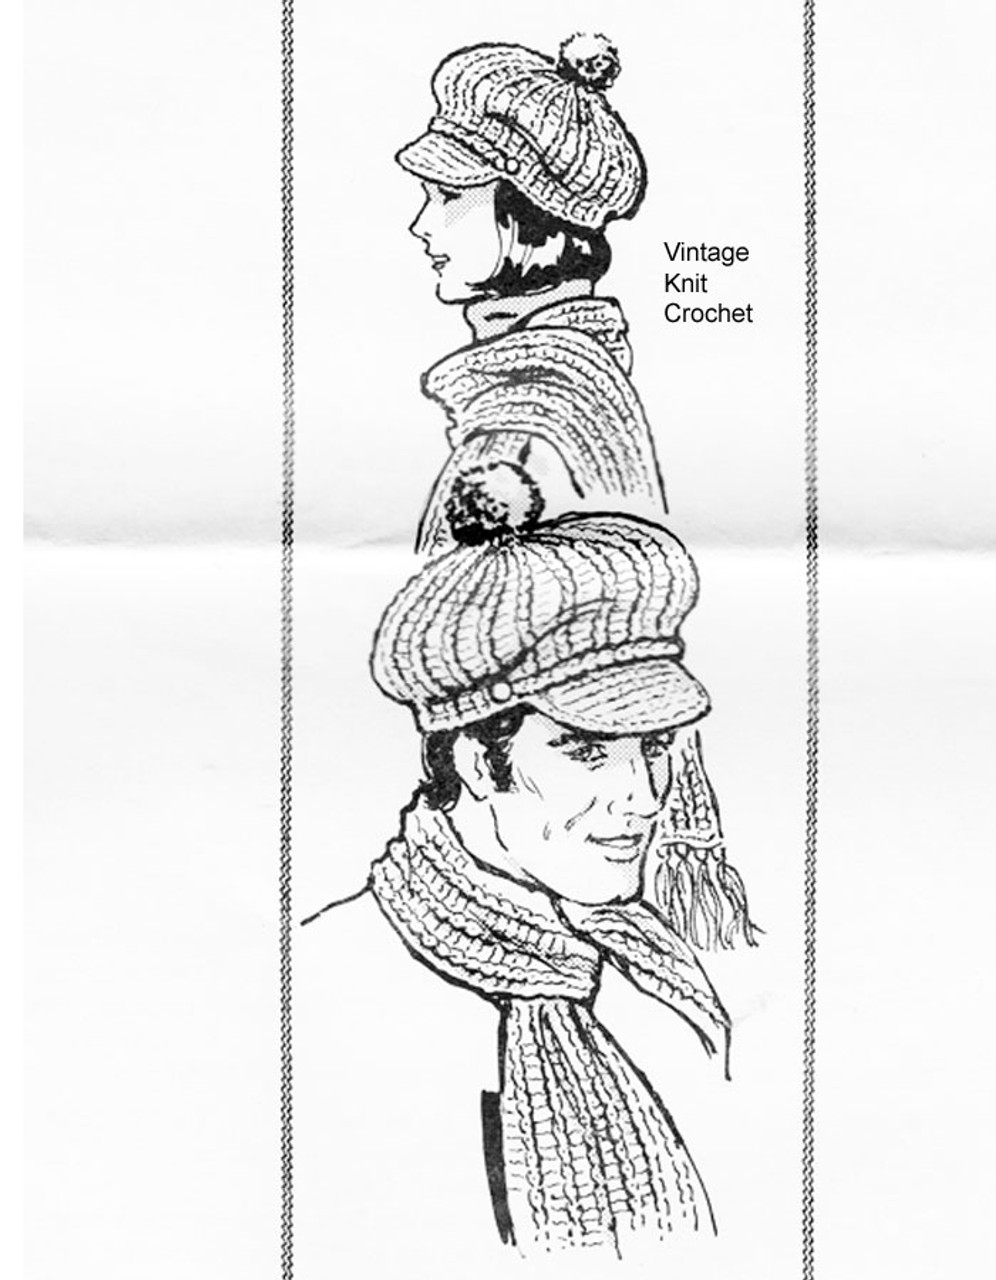 Mail Order Crochet Visor Pattern No 959, Matching Scarf